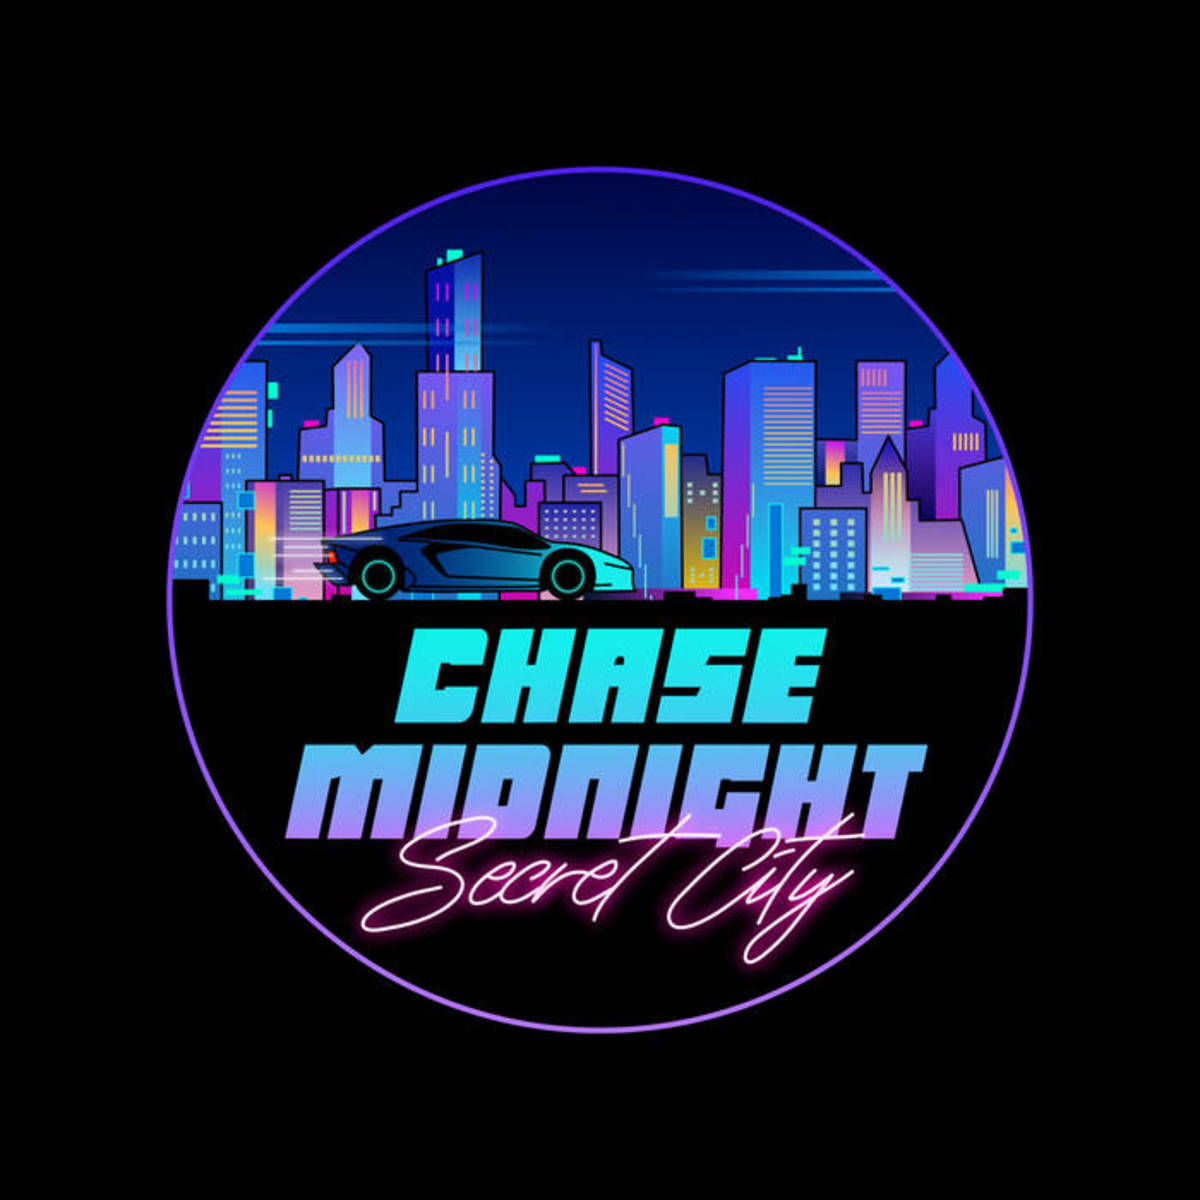 synth-single-review-secret-city-by-chase-midnight